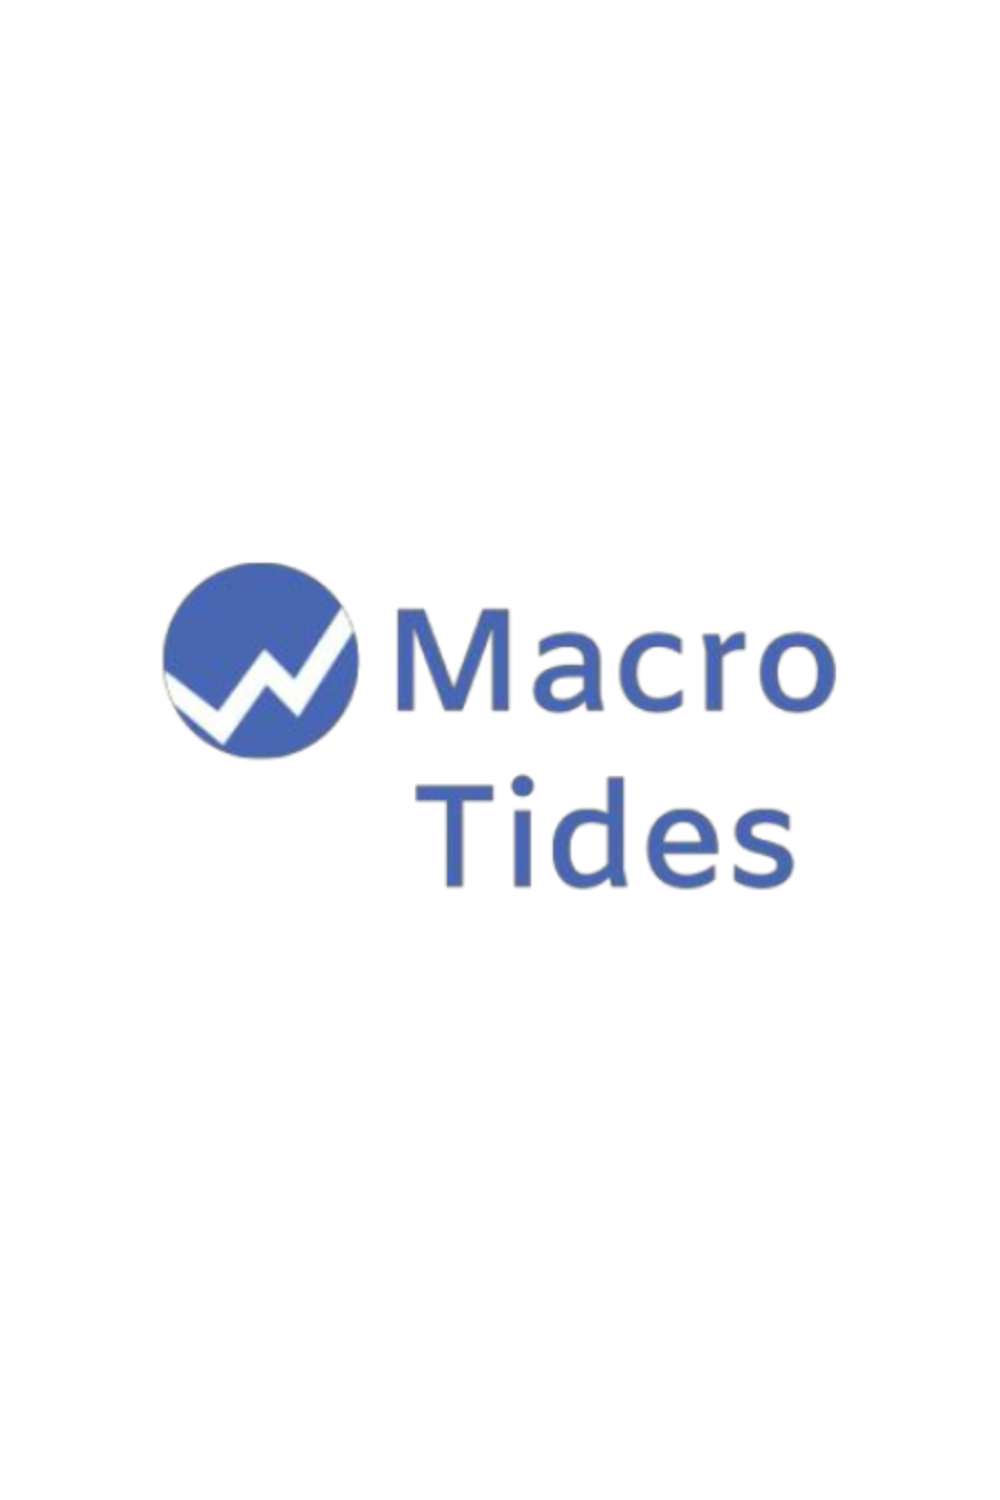 Macro Tides Weekly Technical Review – May 18th 2021